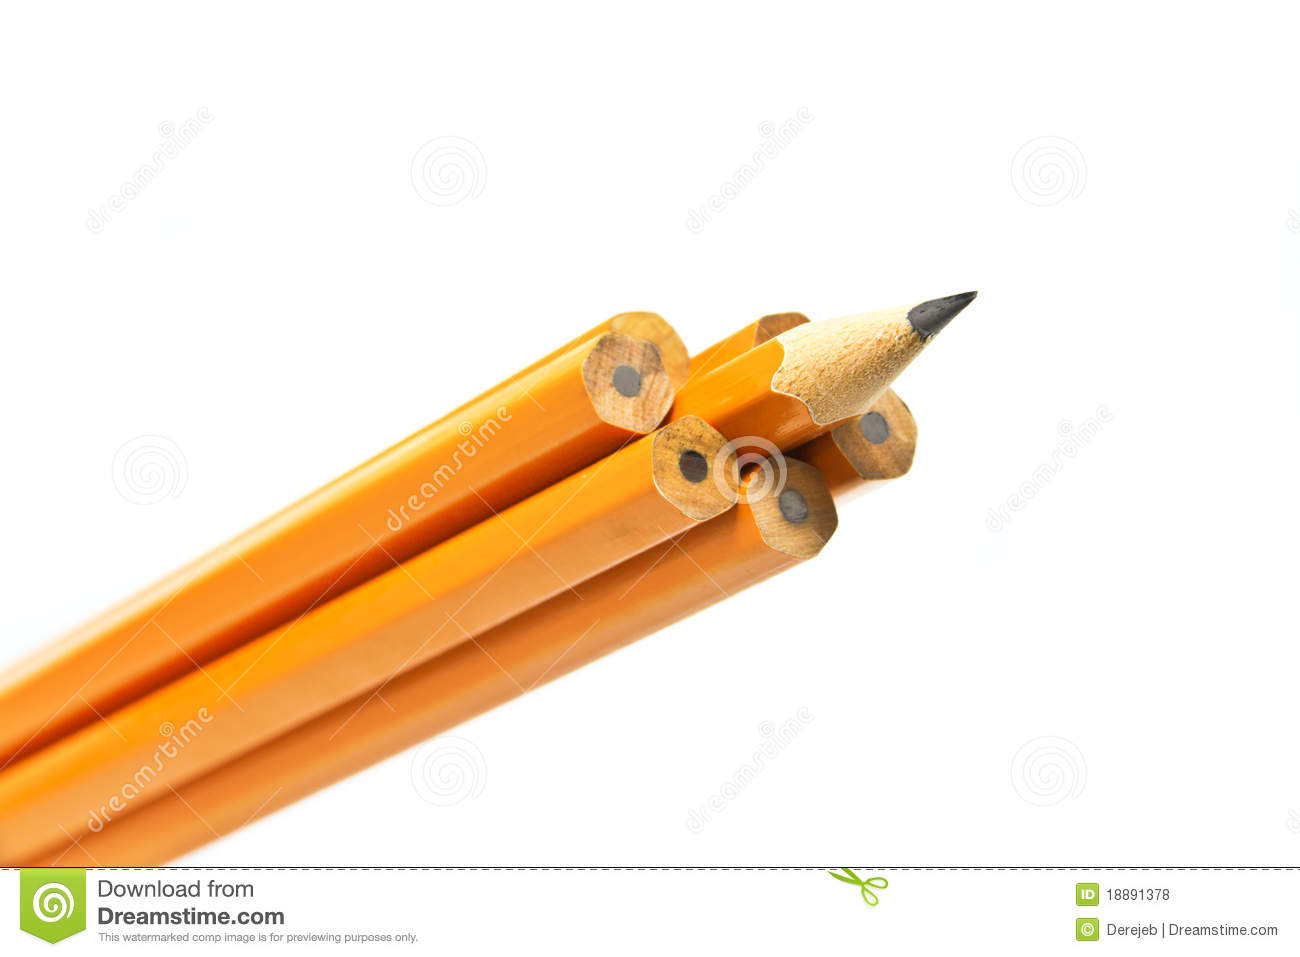 Pencil Clipart  Not Sharp Pencil Clipart  Unsharpened Pencil Clipart